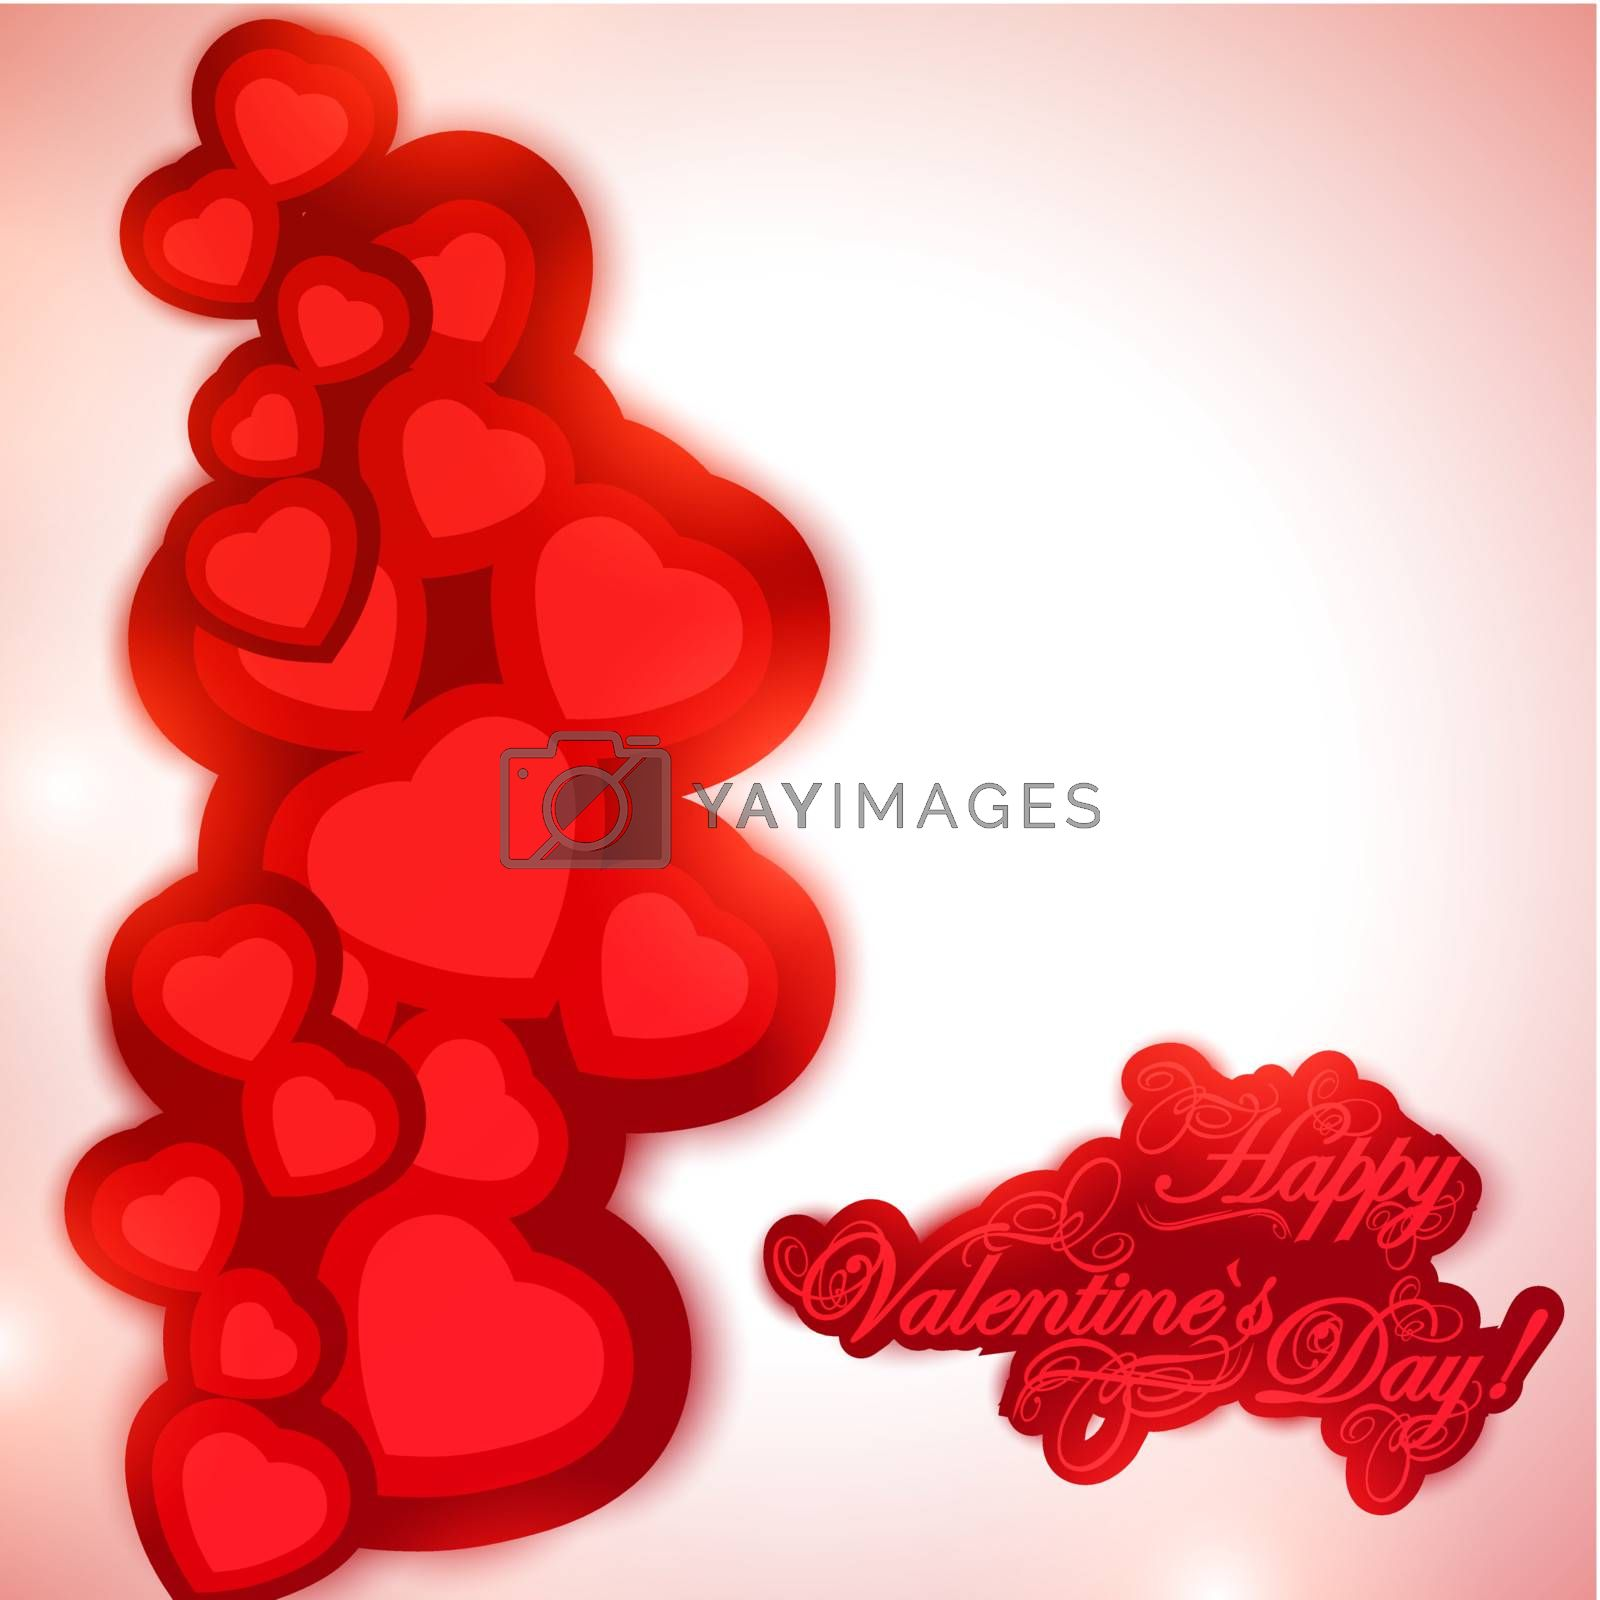 Valentine day background with greetings and hearts